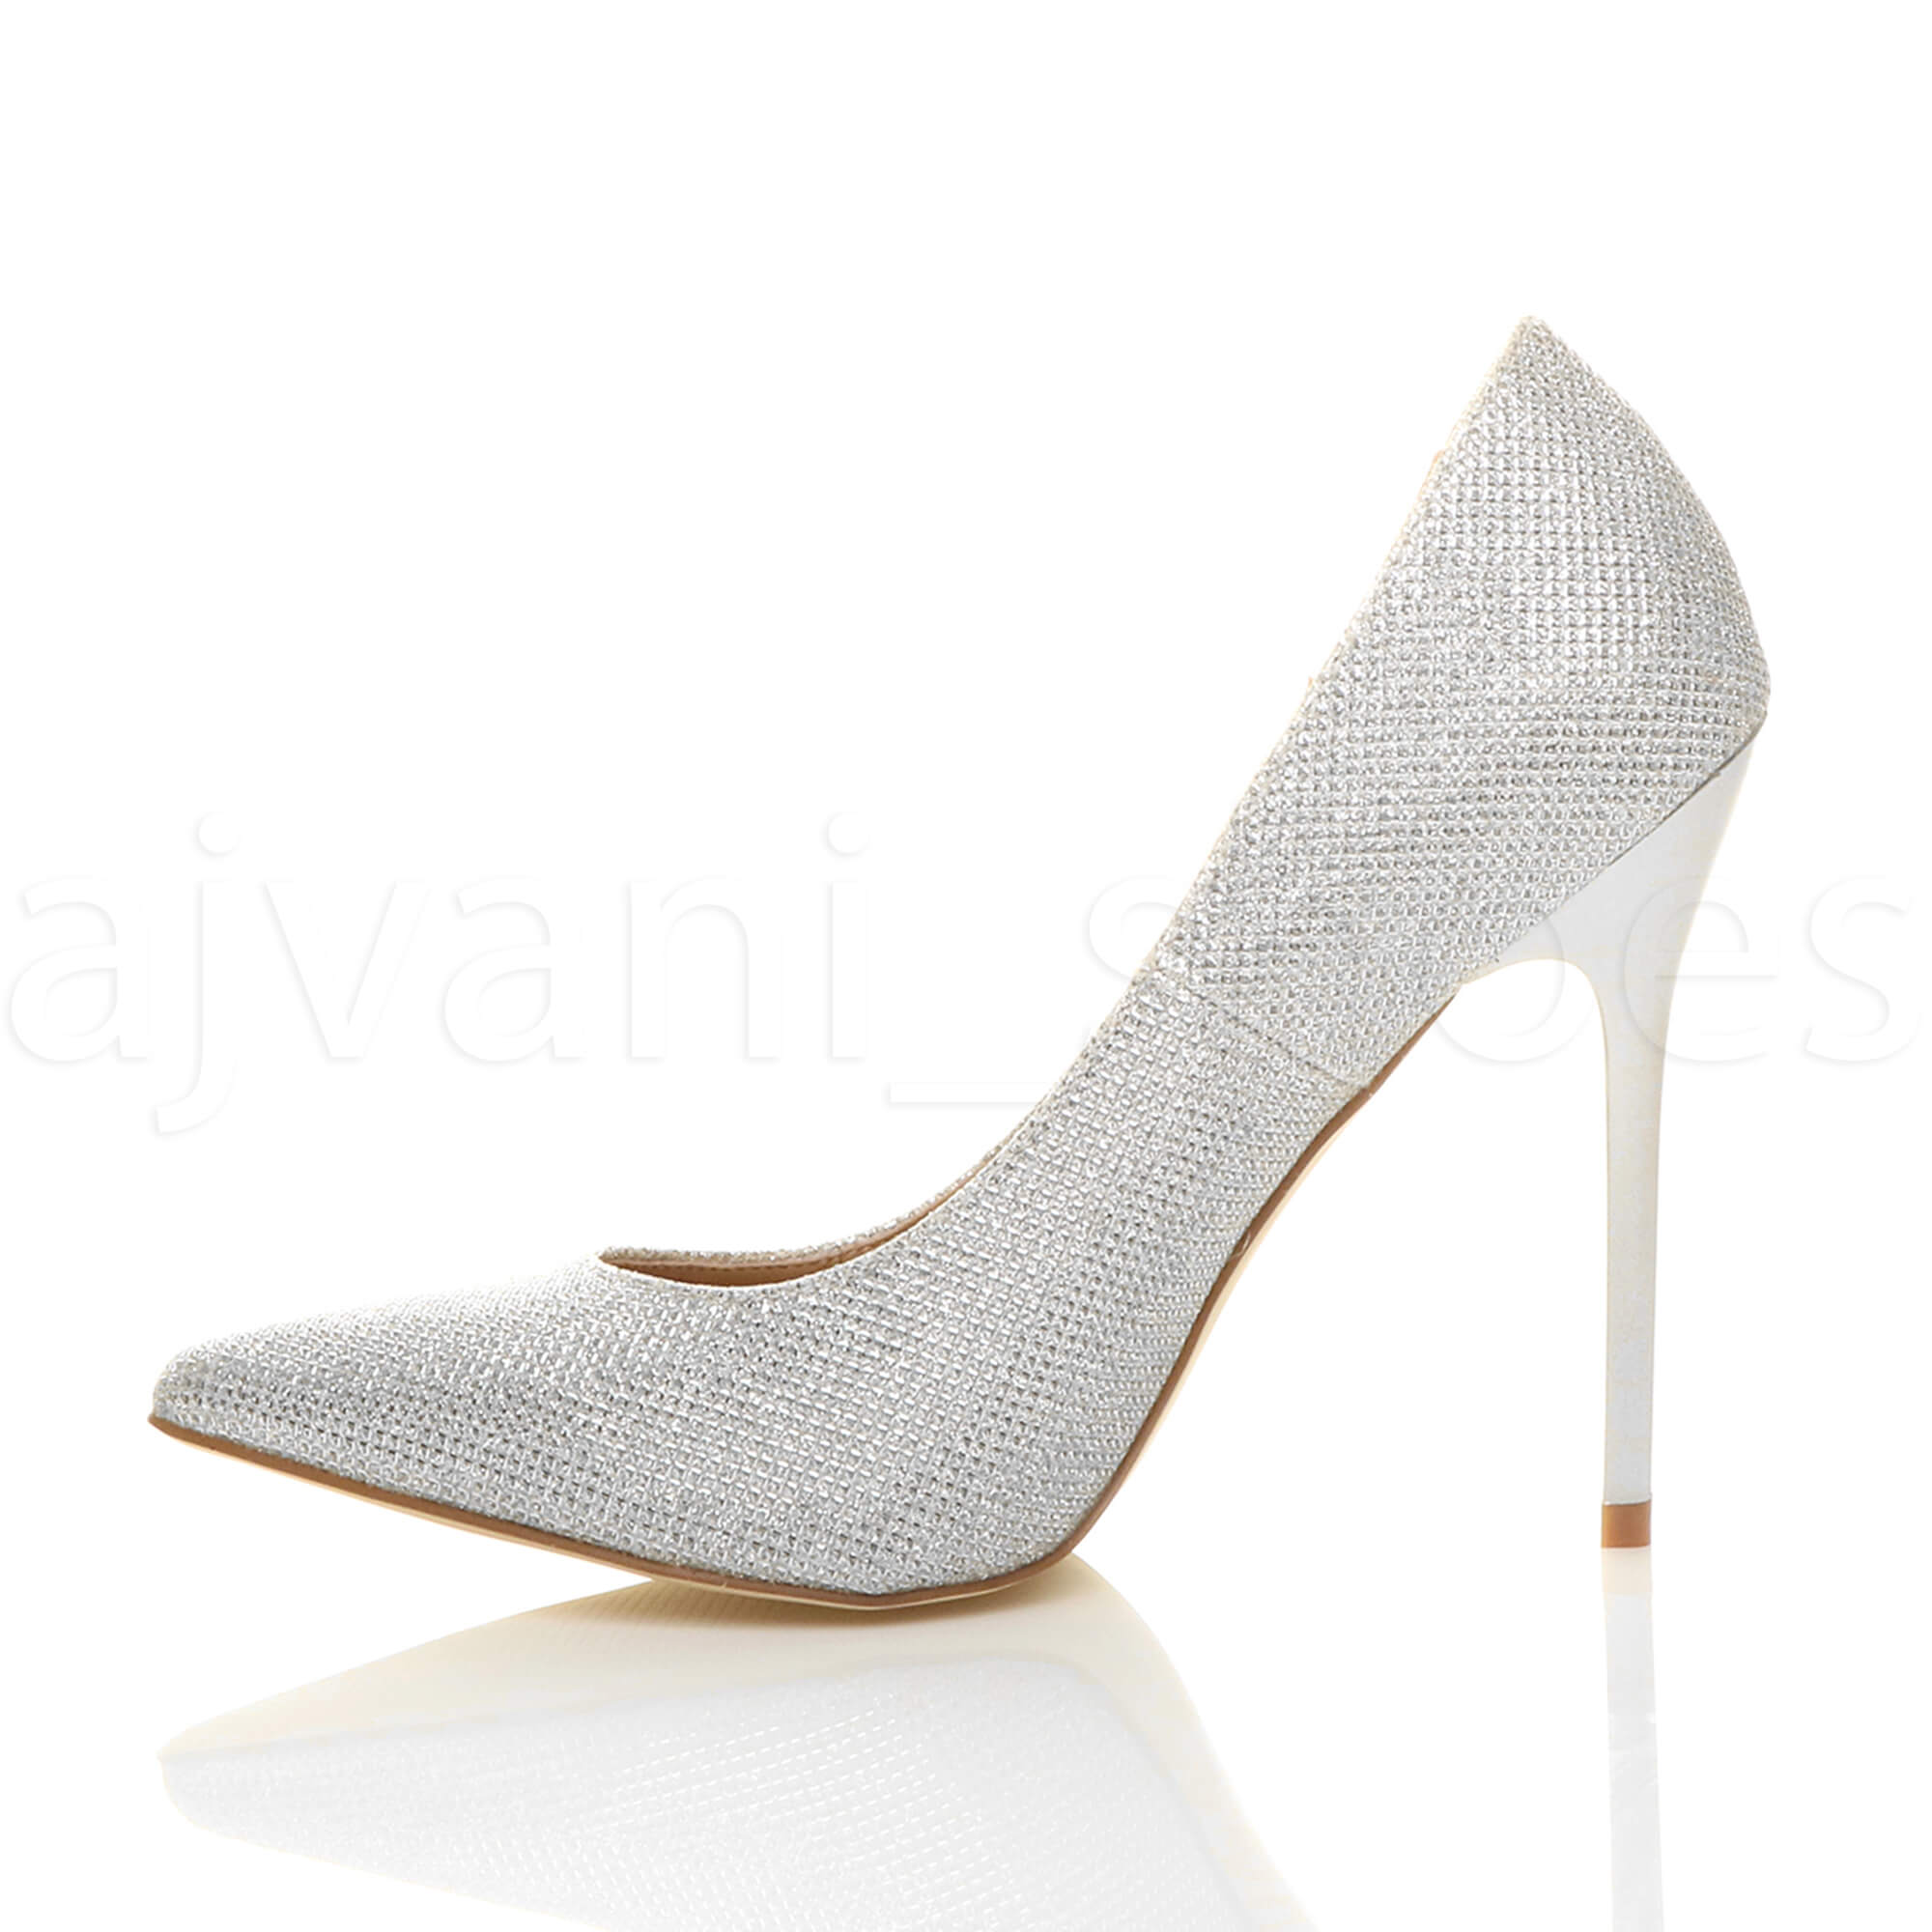 WOMENS-LADIES-HIGH-HEEL-POINTED-CONTRAST-COURT-SMART-PARTY-WORK-SHOES-PUMPS-SIZE thumbnail 201